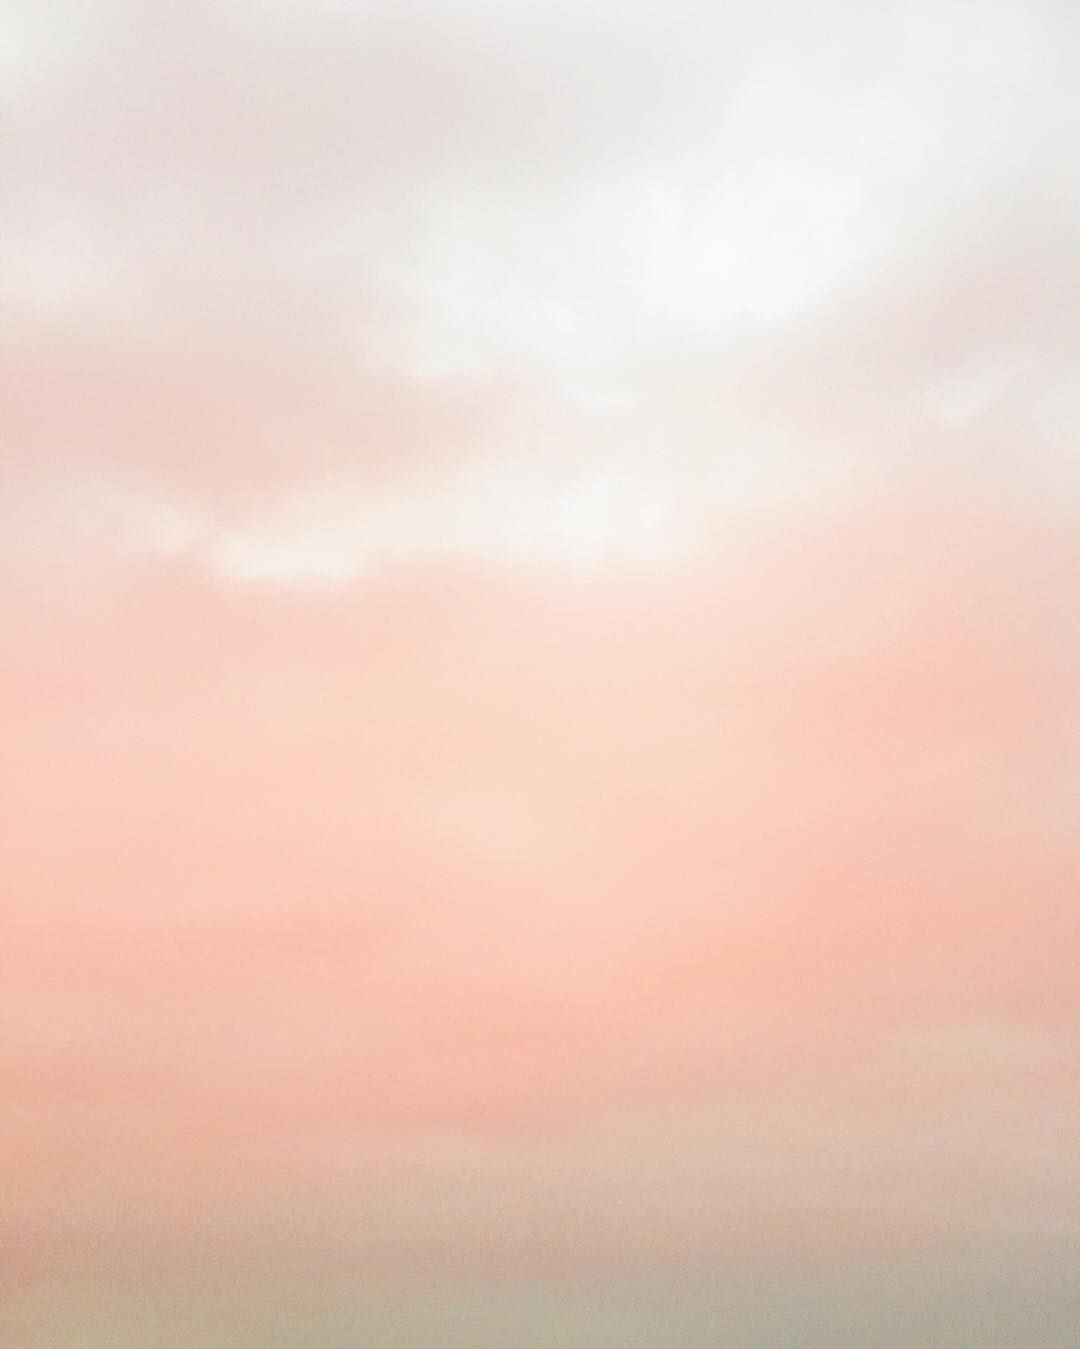 #kgobehindthescenes: Sunsets = perfect colour inspiration